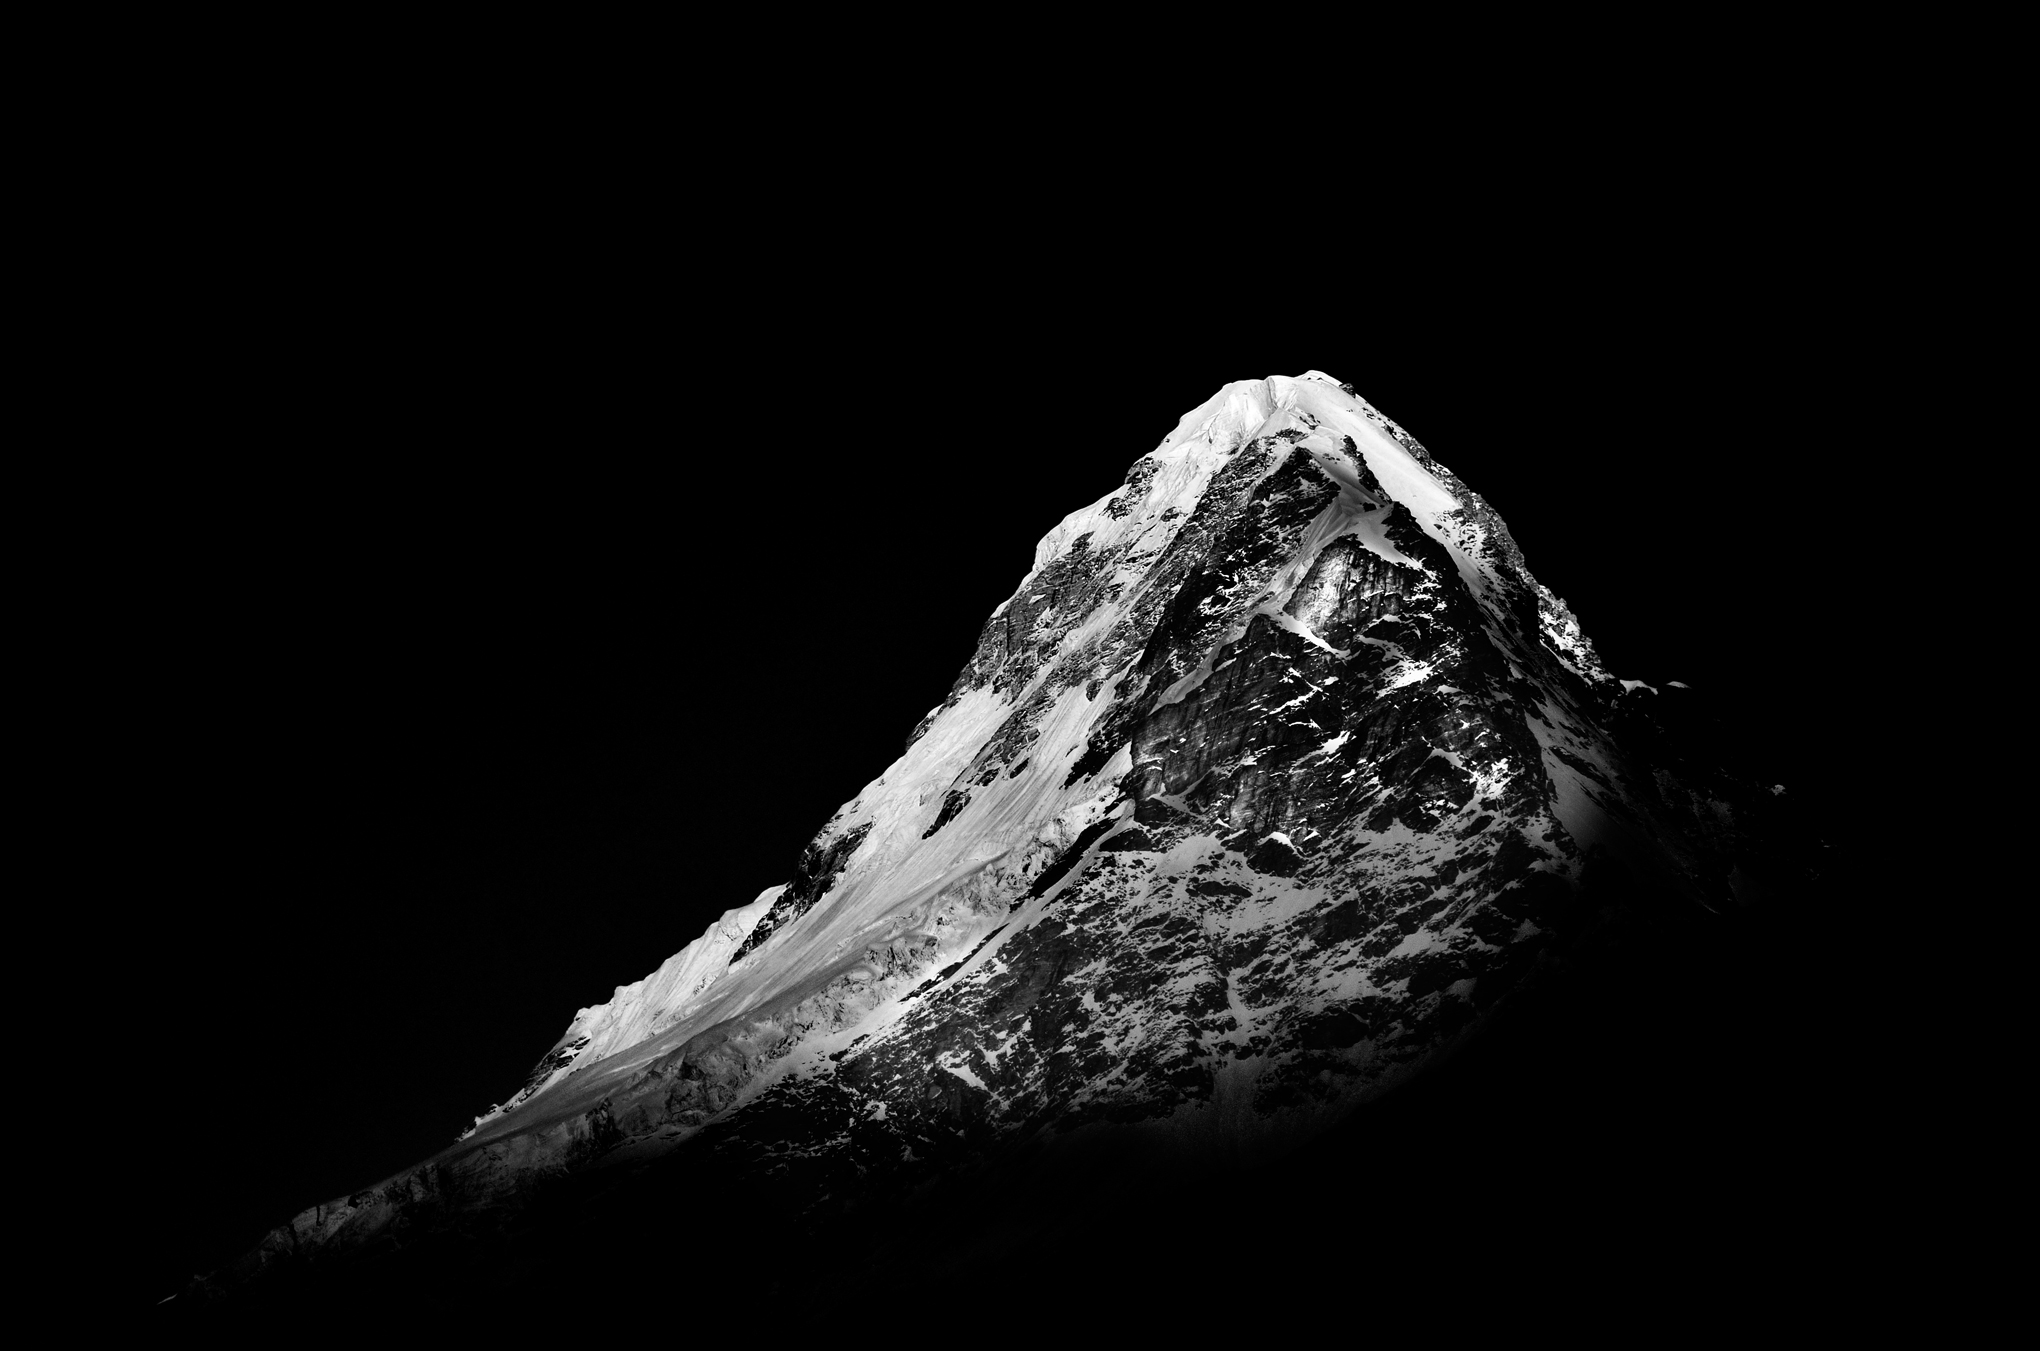 Black and white mountaintop converted in Photoshop